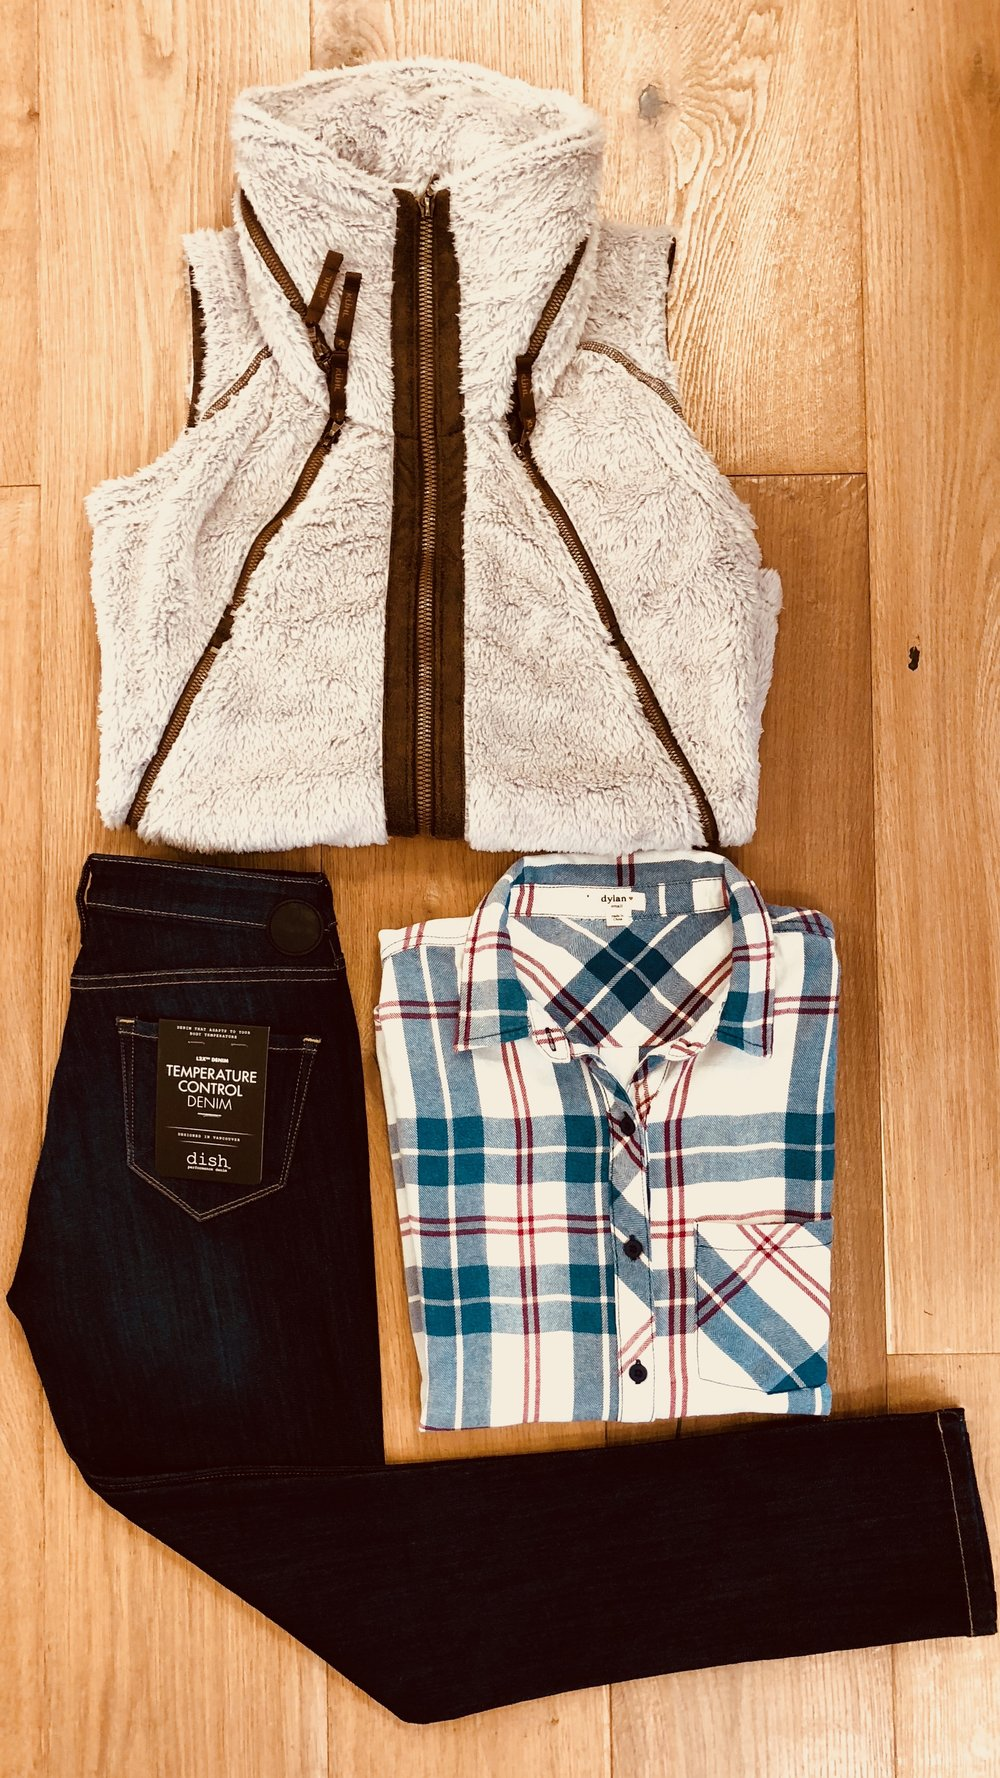 COZY WEEKEND  - Kuhn Flight Jacket, Dish Jeans and a flannel from Dylan create a killer outfit that is comfortable and stylish.